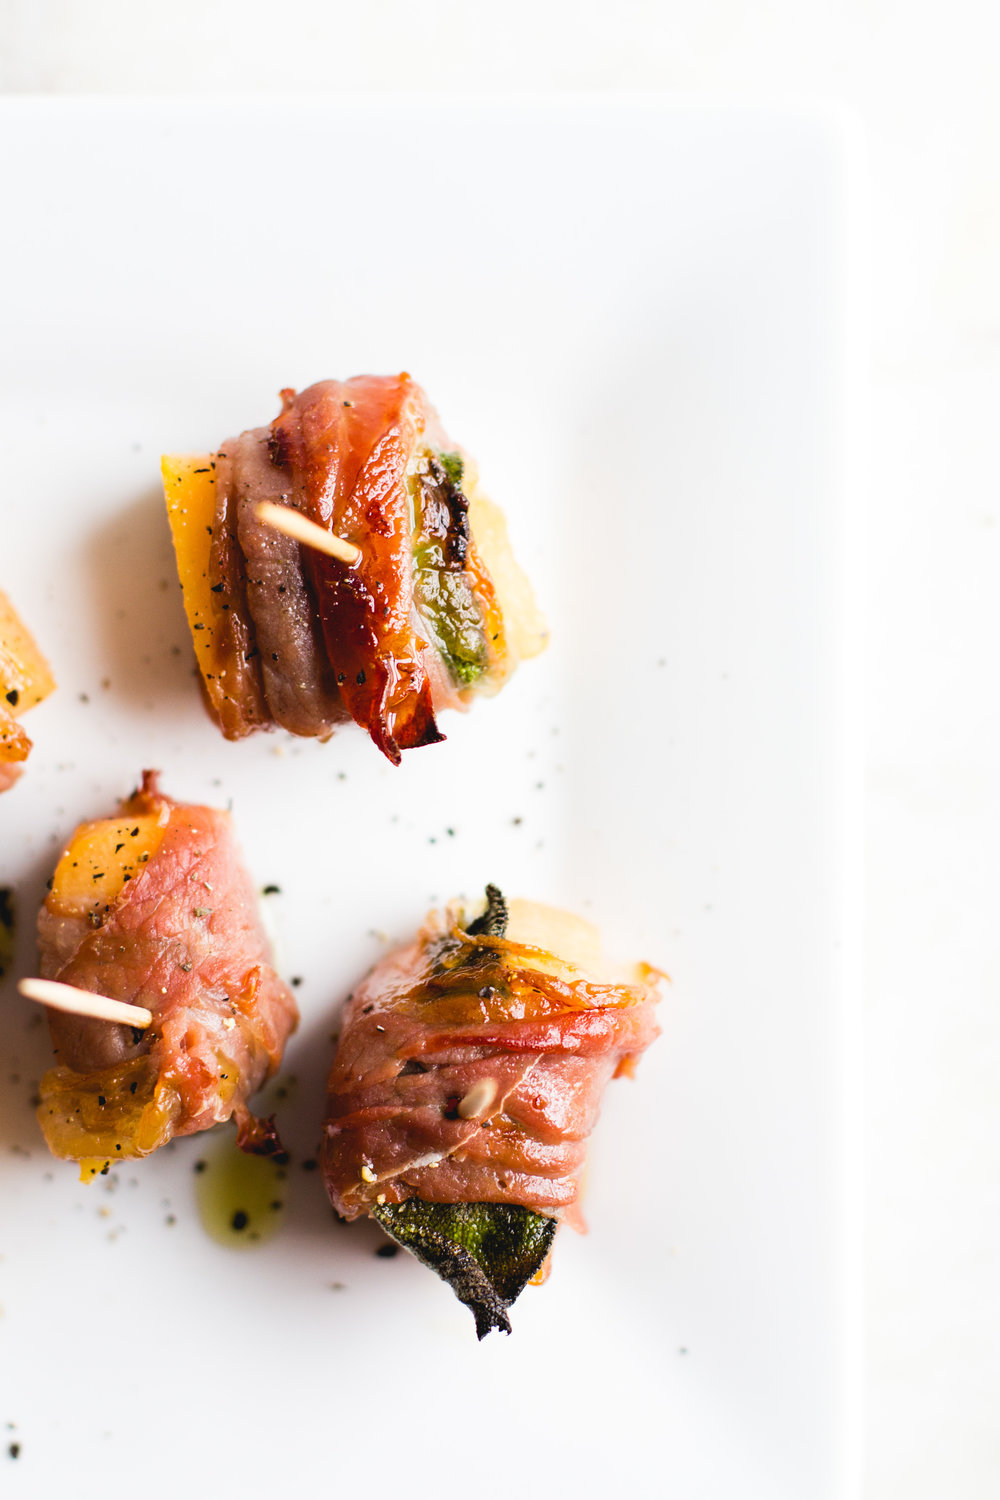 Prosciutto Wrapped Melon with Sage + Black Pepper - Sarah J. Hauser